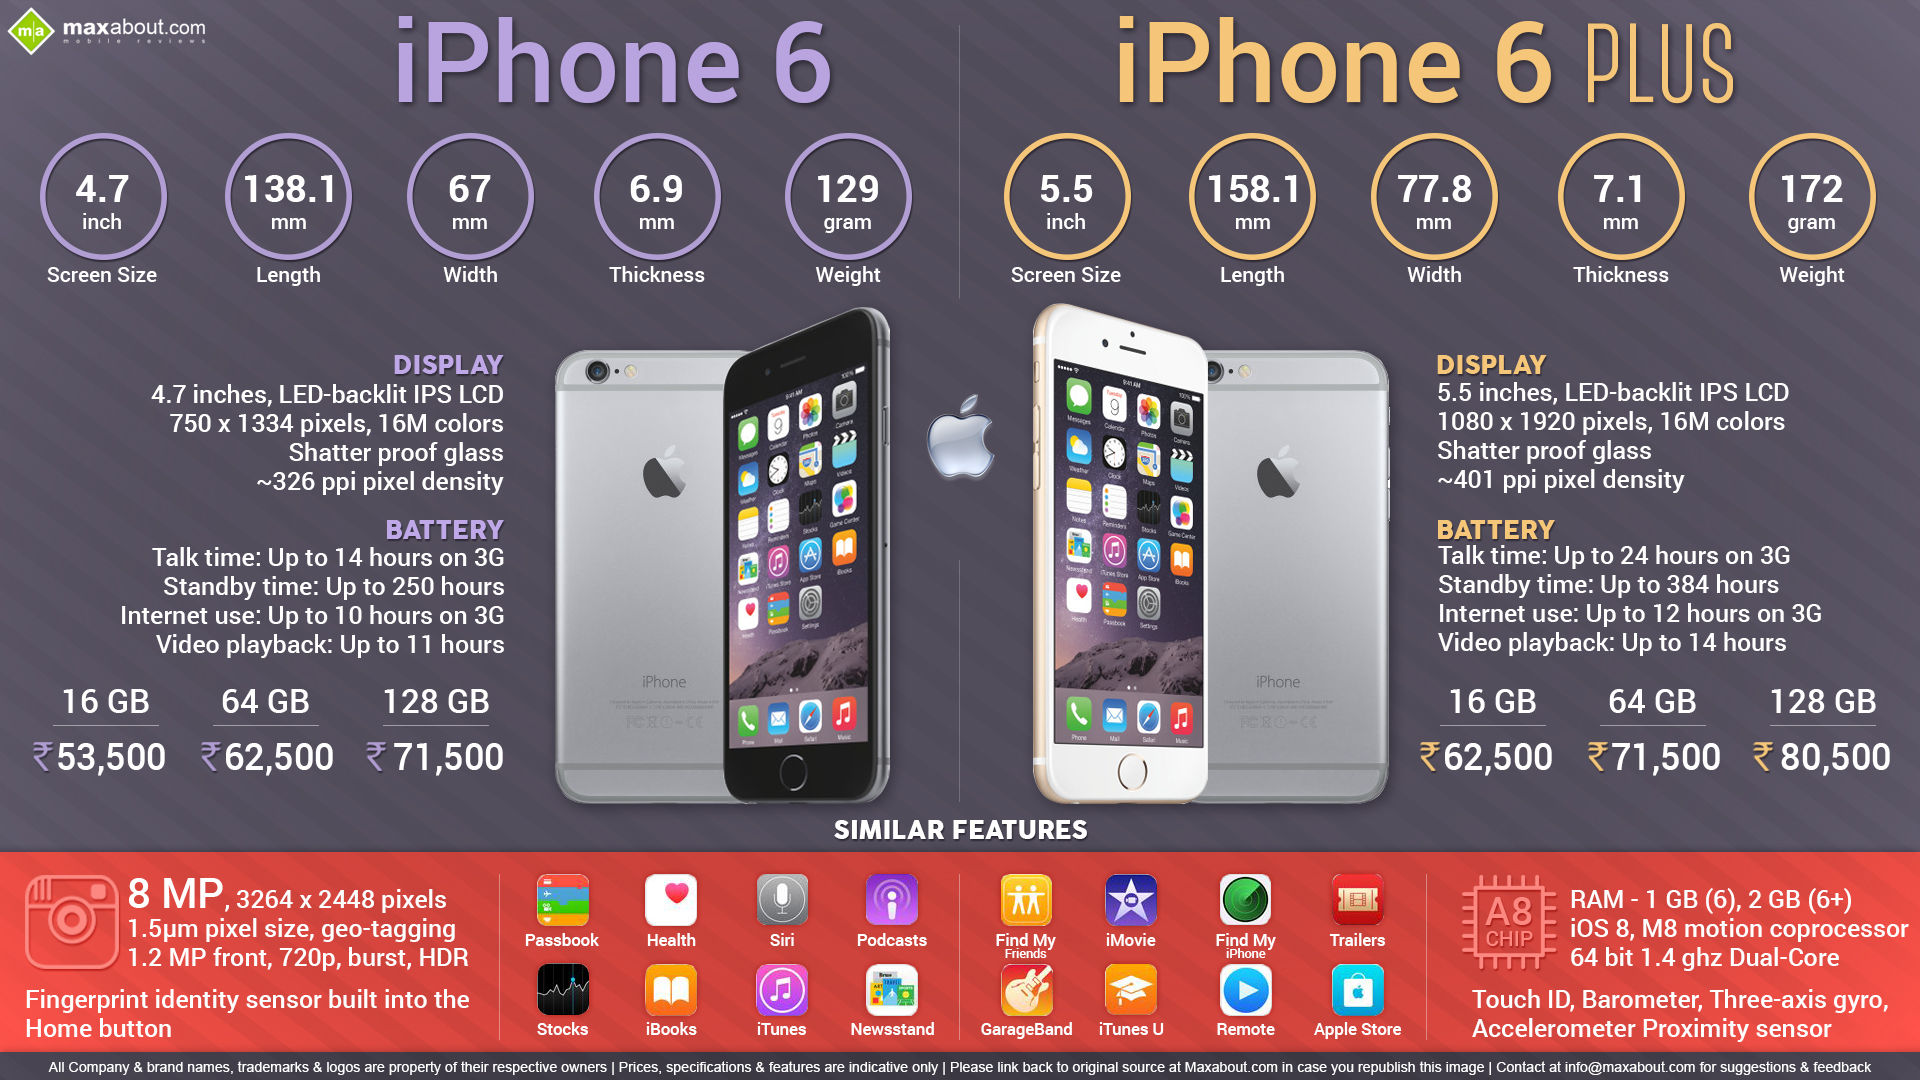 All You Need to Know about Apple iPhone 6 & iPhone 6 Plus